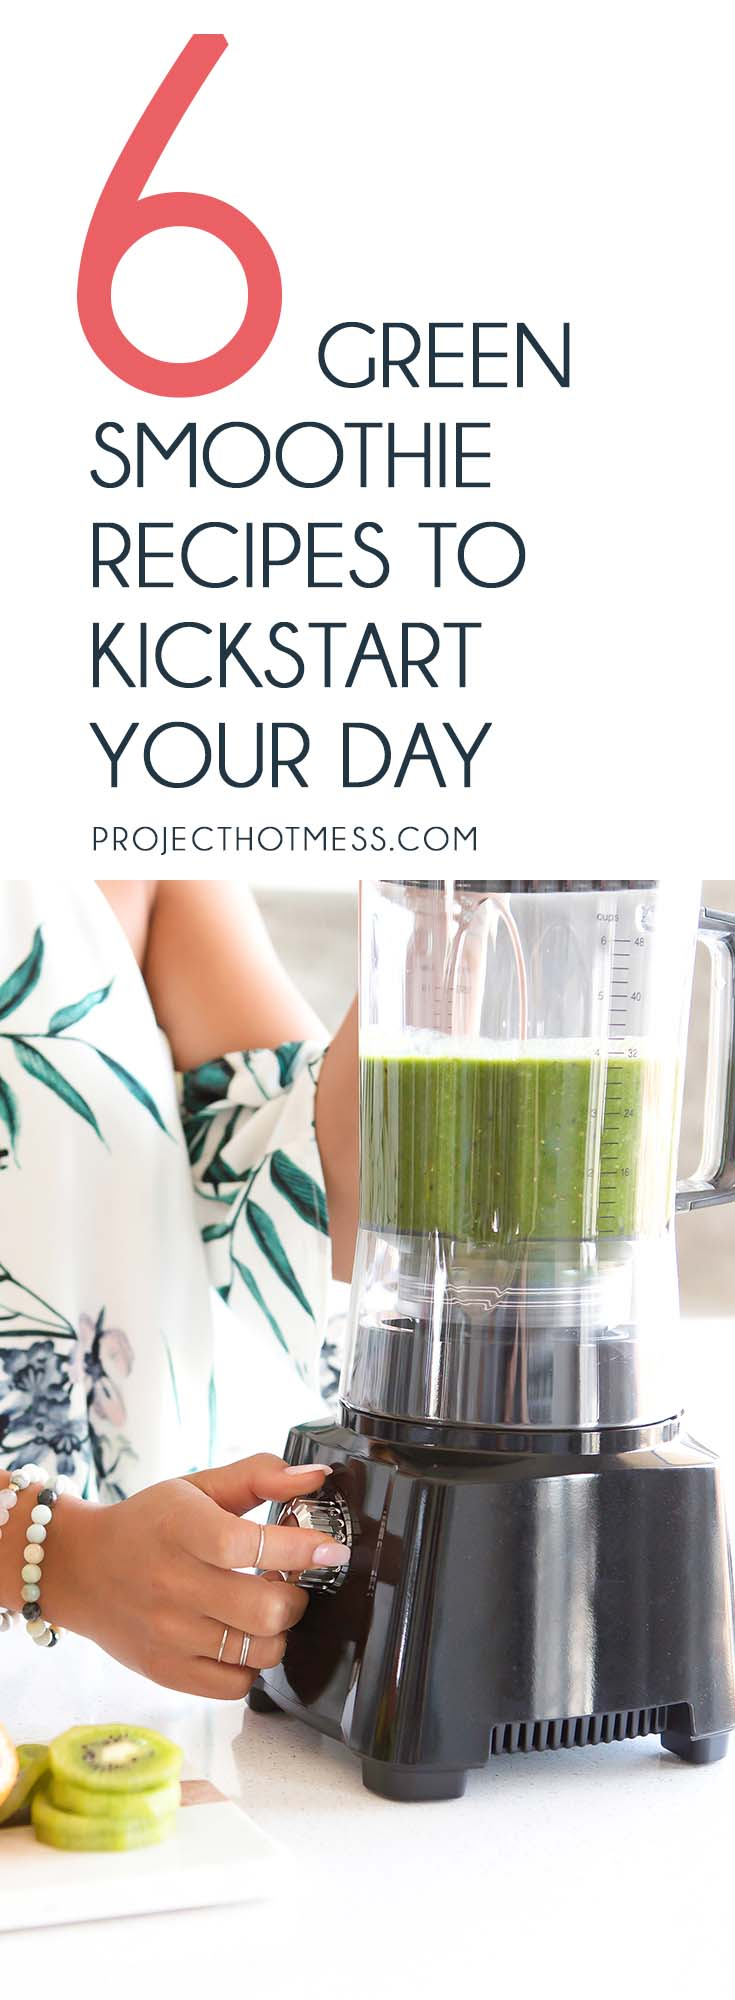 Sometimes you need your morning caffeine kick, other days you need something fresh like one of these green smoothie recipes to kick start your day! Green Smoothie | Healthy Smoothie | Fruit Smoothie | Healthy | Women's Health | Green Smoothie Inspiration | Smoothie Recipe | Breakfast Smoothie | Summer Smoothie | Green Smoothie Recipe